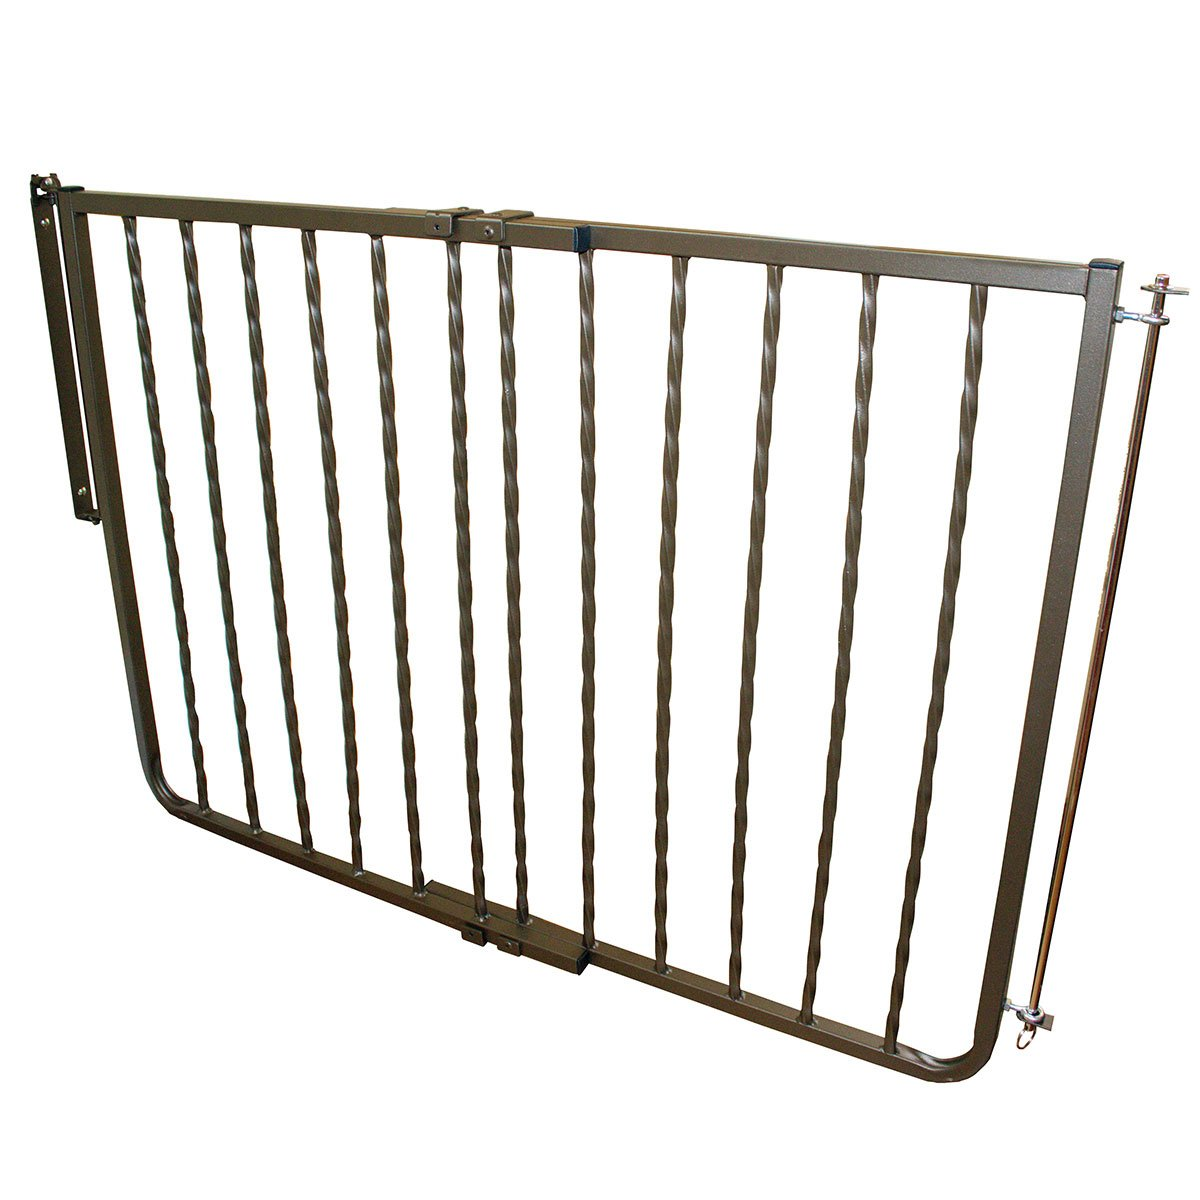 Cardinal Gates Wi30-bz Wrought Iron Decor Hardware Mounte...